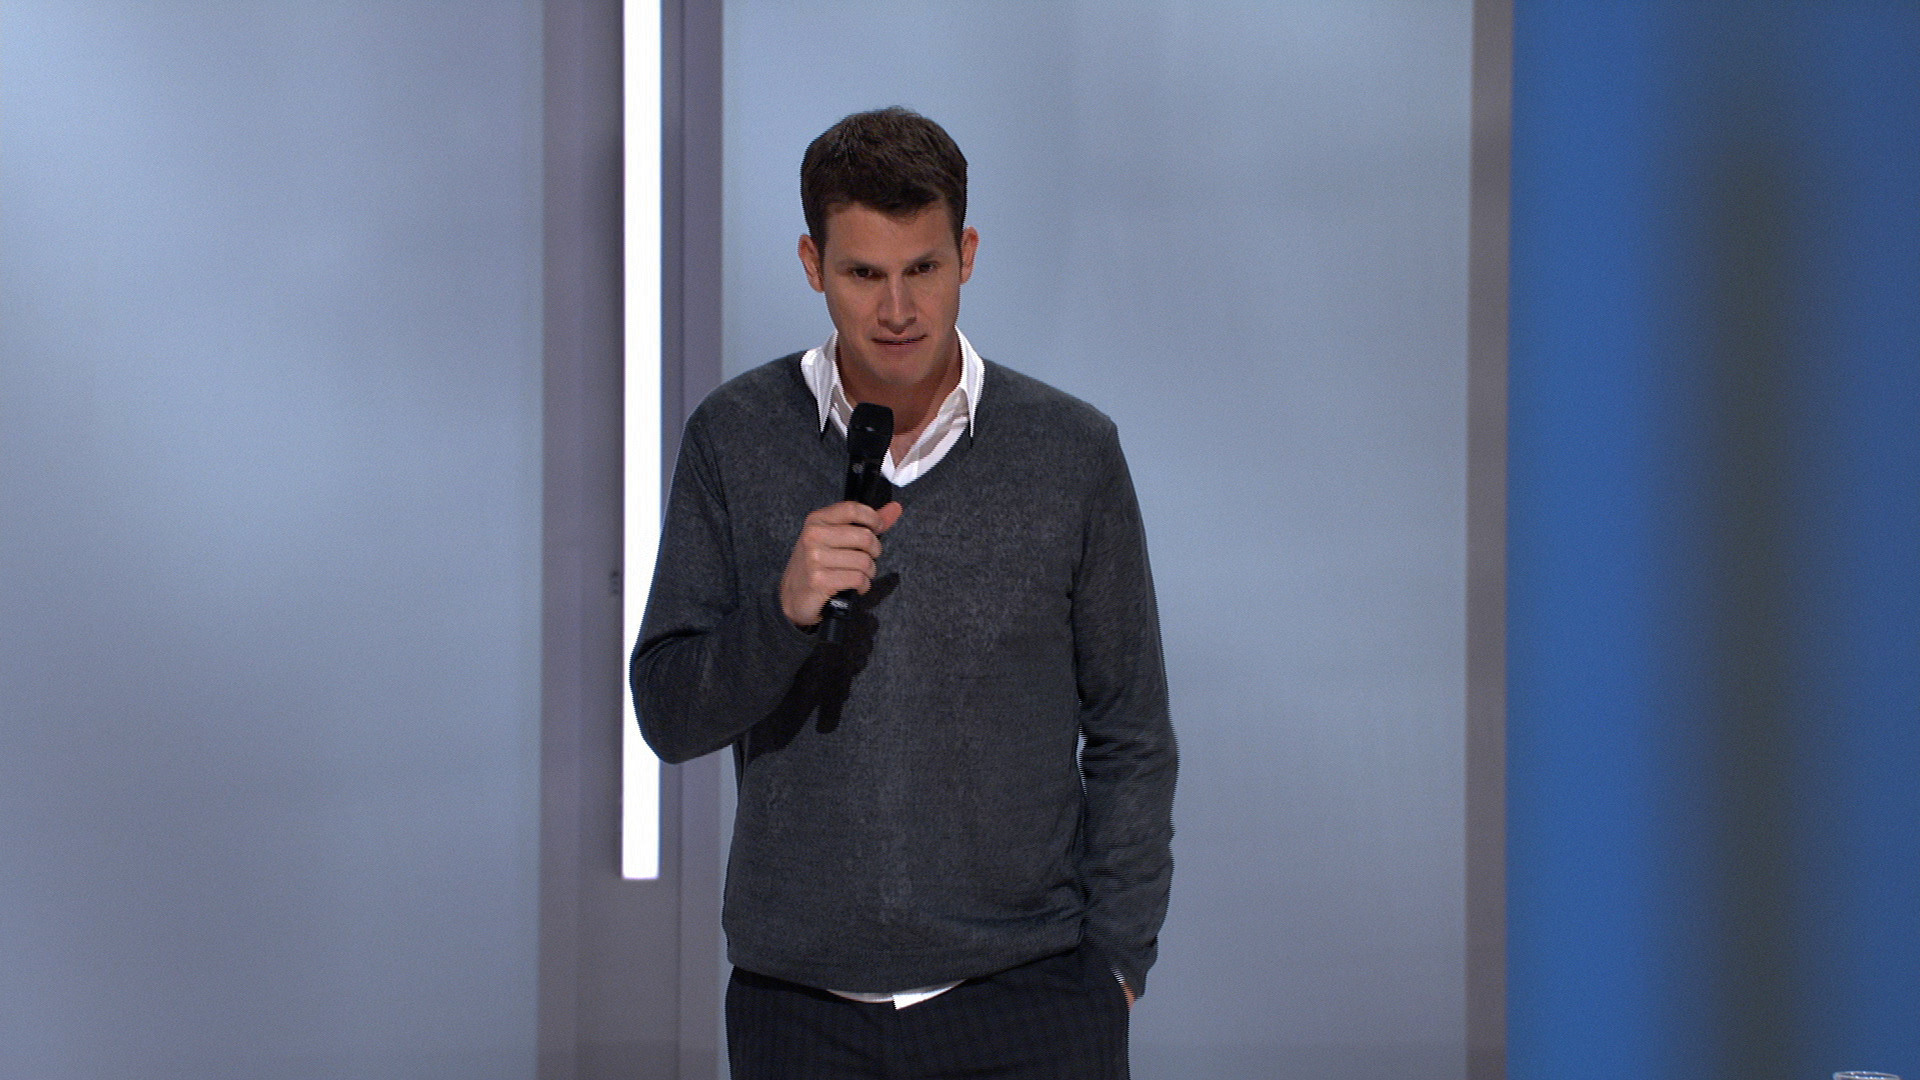 Daniel Tosh - Sounds Like a Challenge